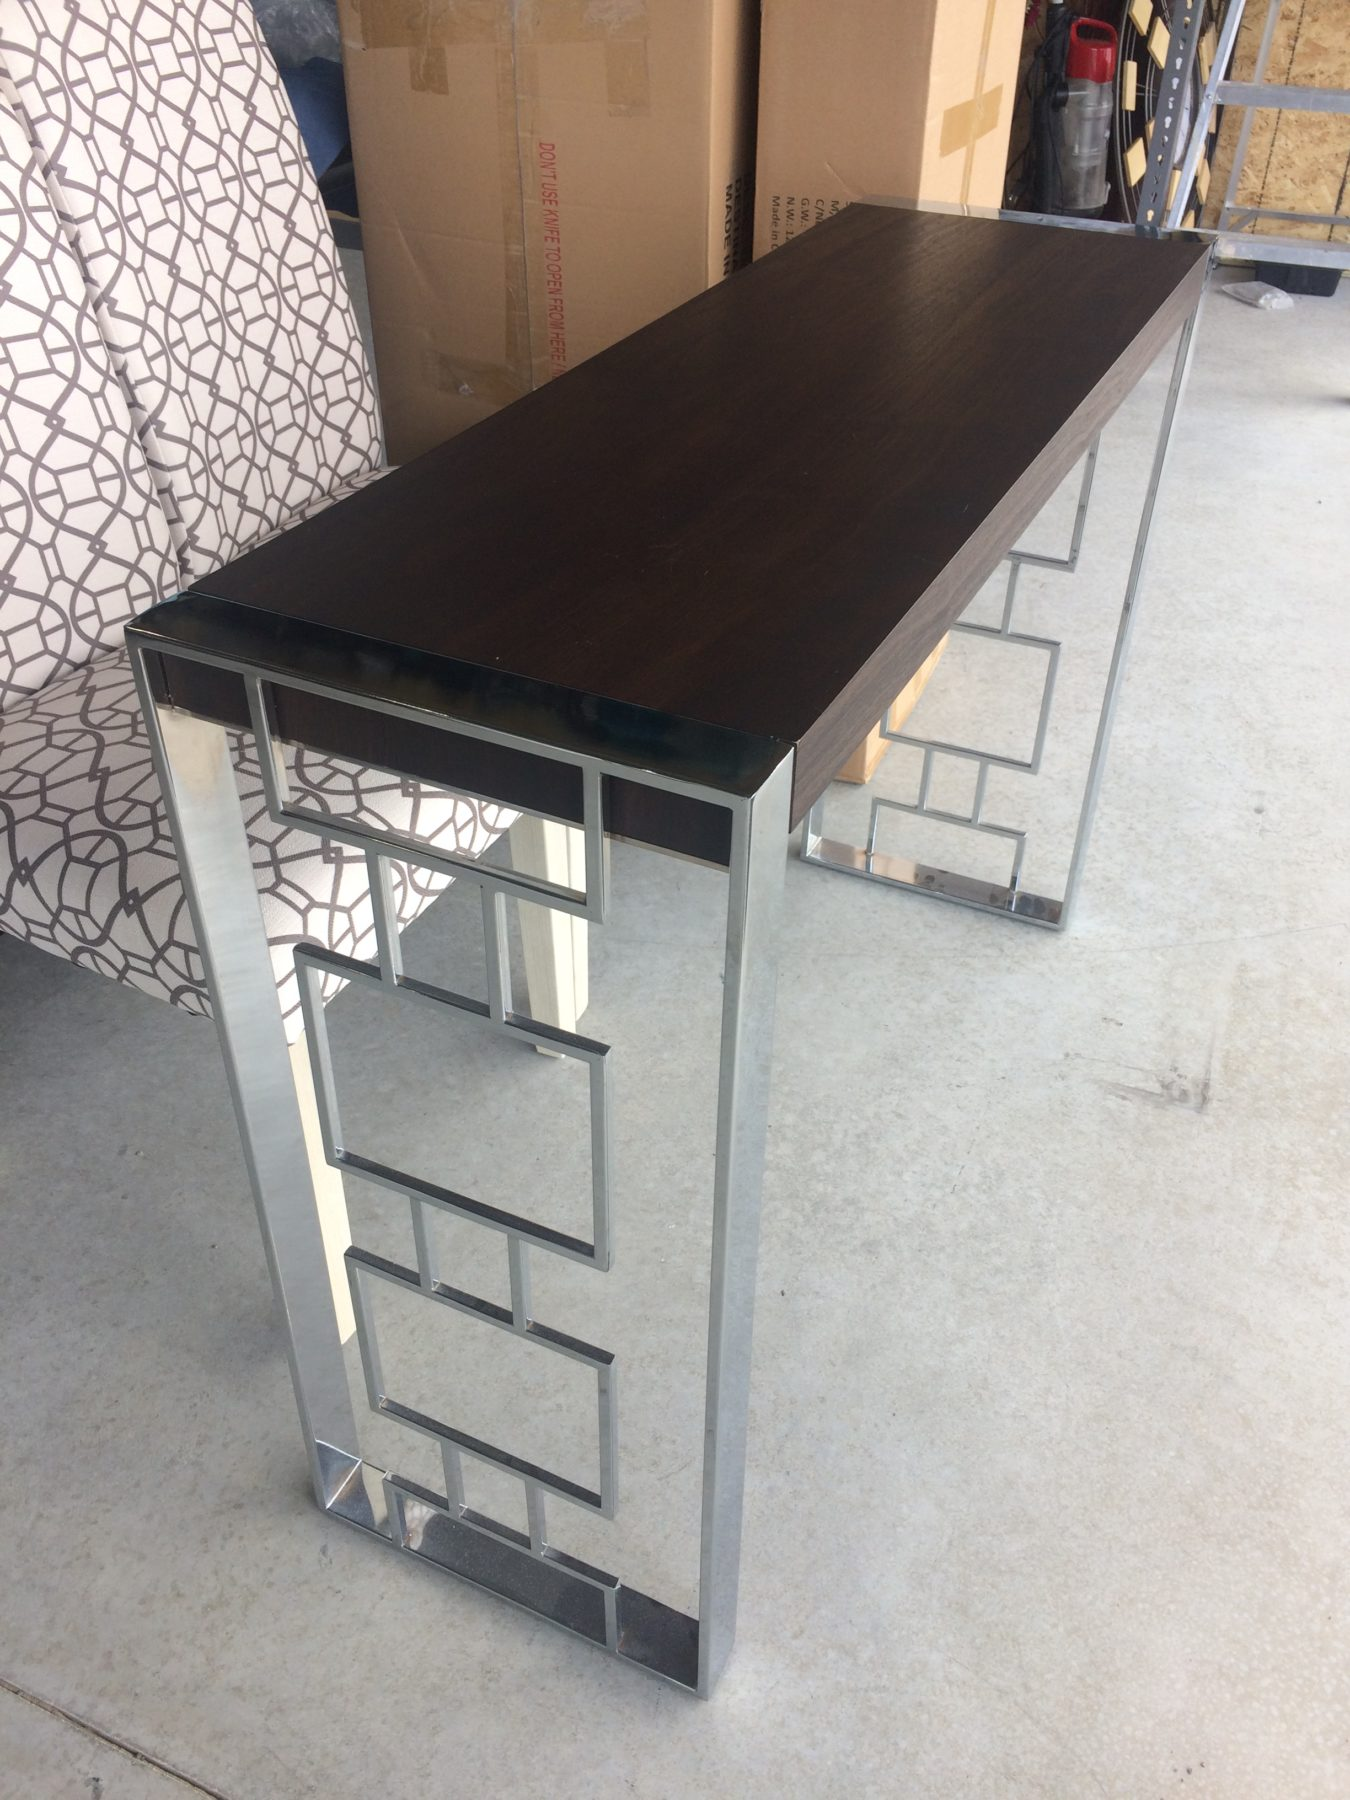 Console Table Dark Wood Top With Silver Chrome Legs M Home Staging Furniture Als